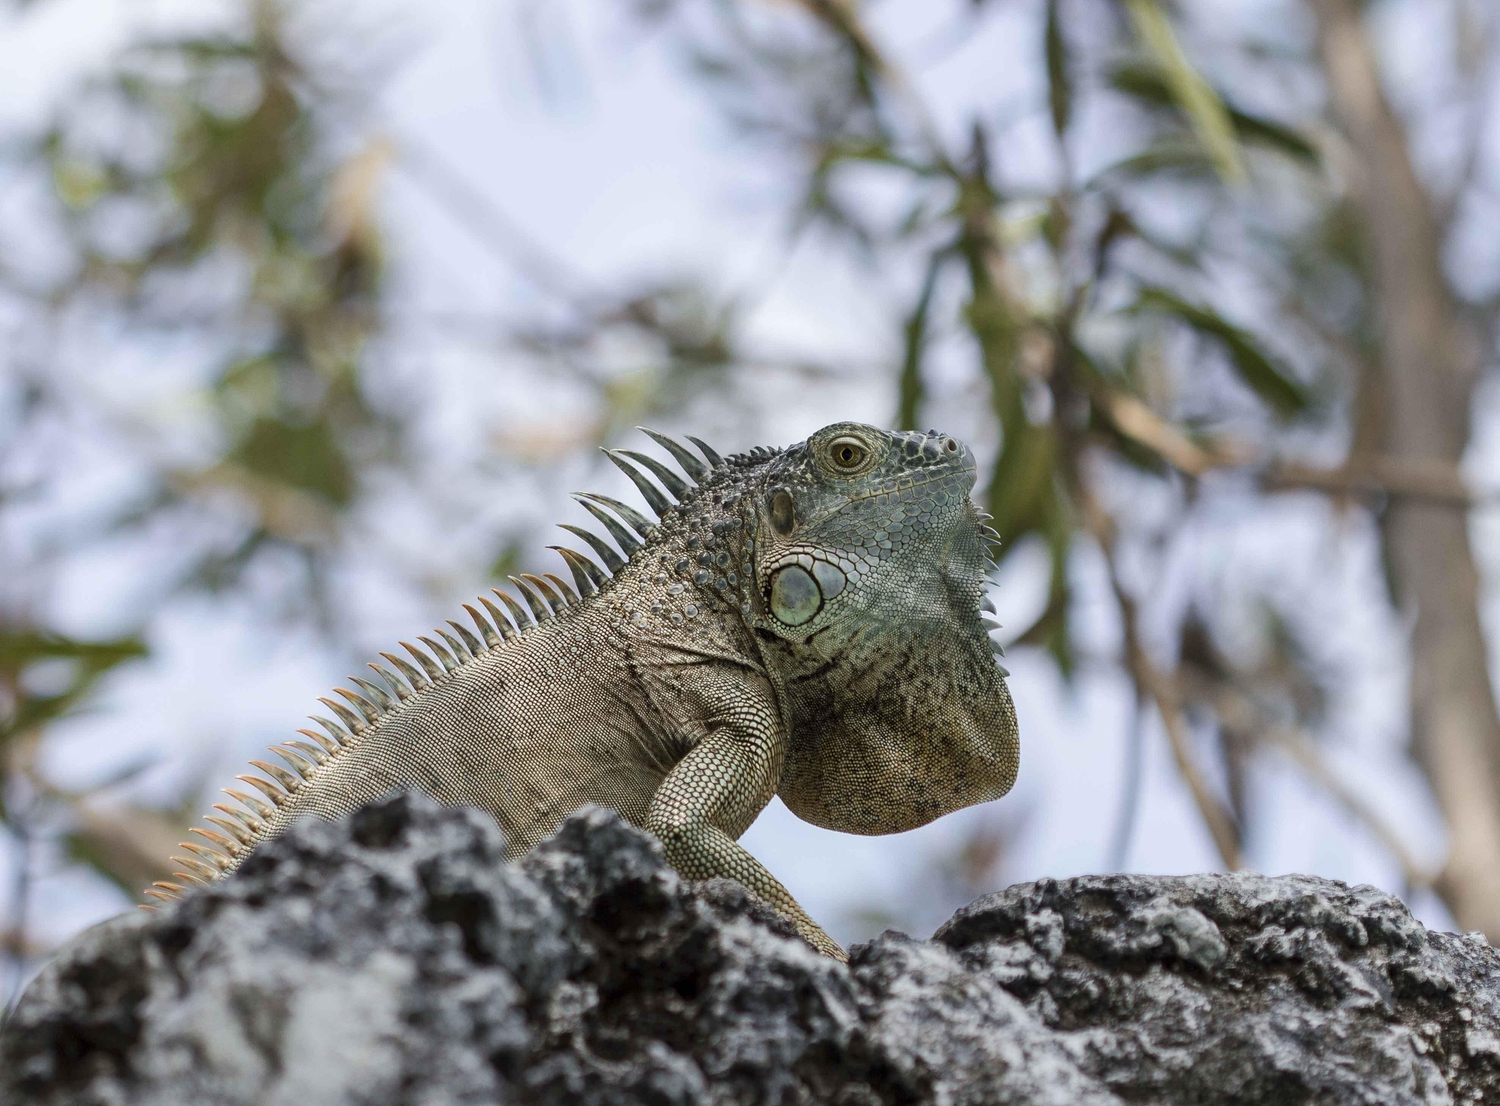 Iguana perched on a rock in the Cayman Islands